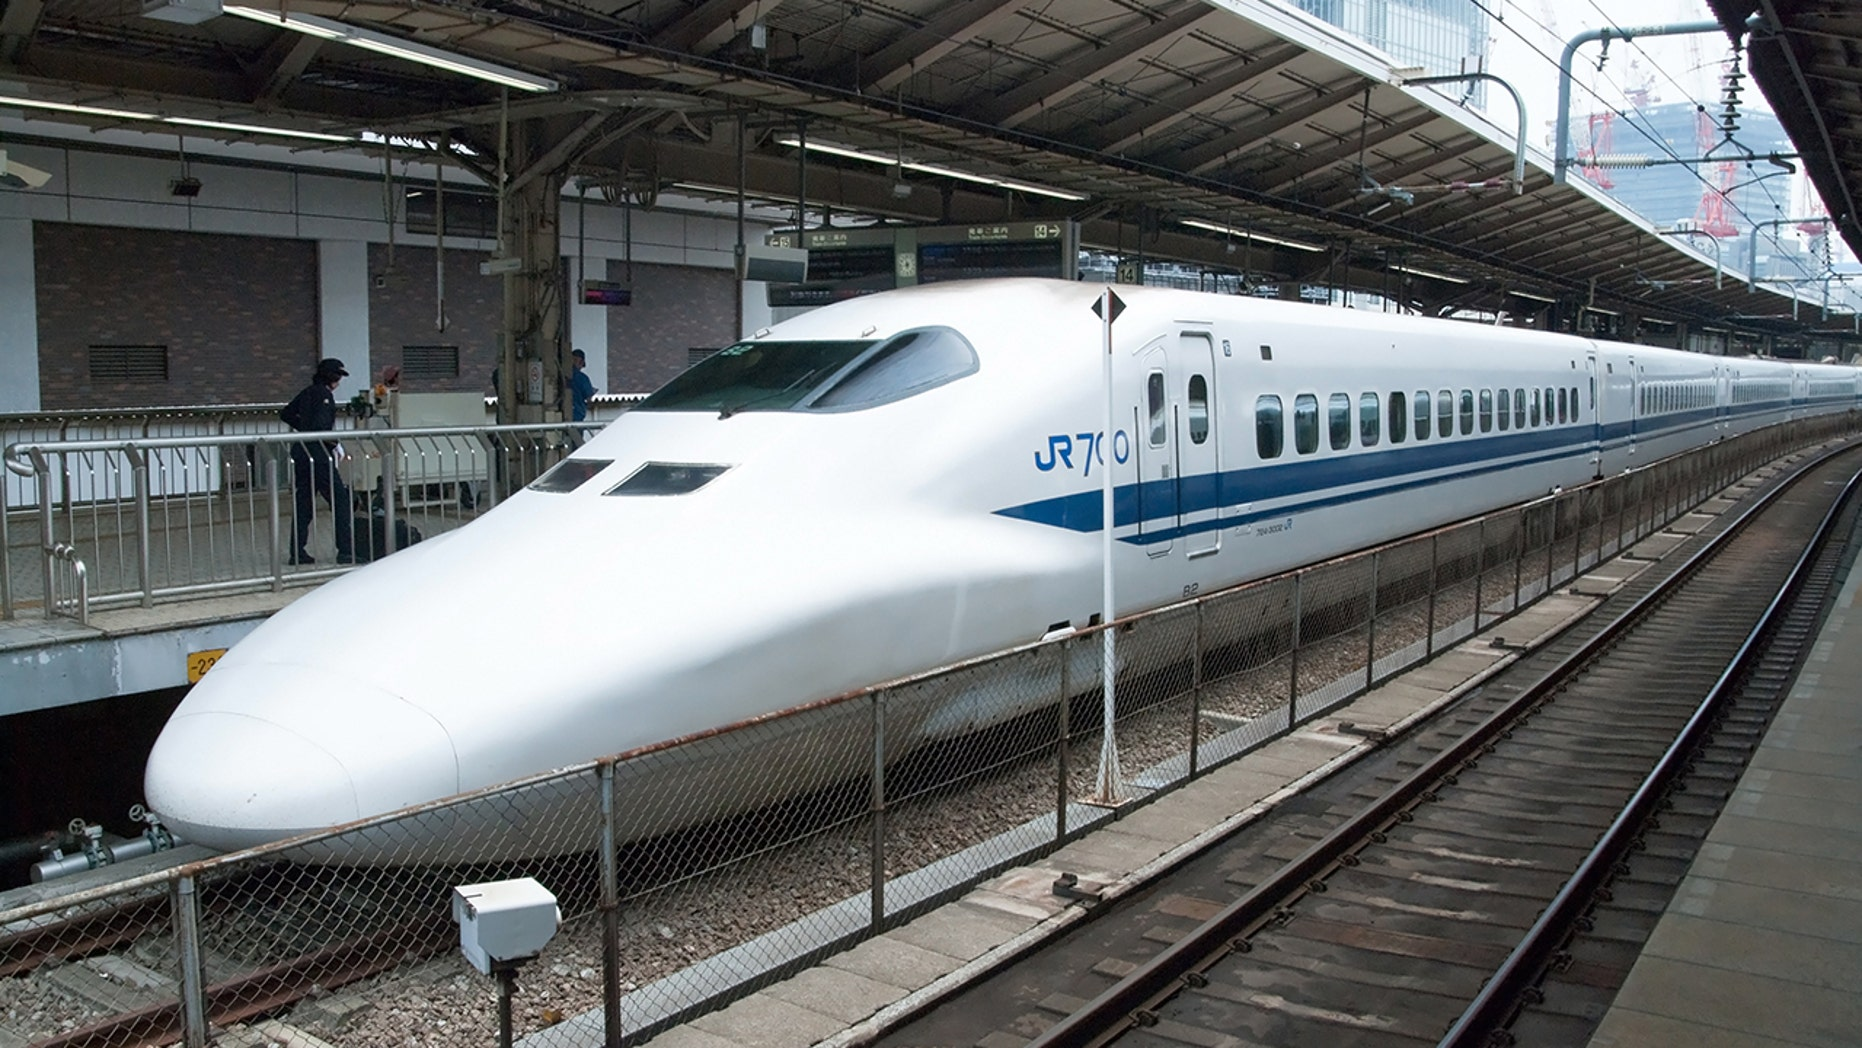 A bullet train in Japan had to make an emergency stop after a passenger's tablet caught fire